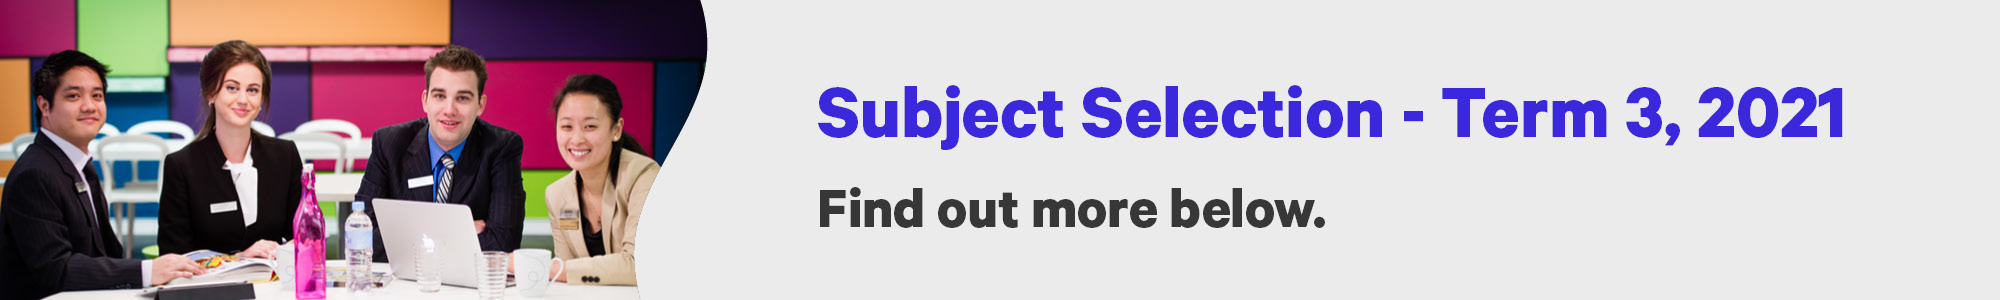 BMIHMS Subject Selection